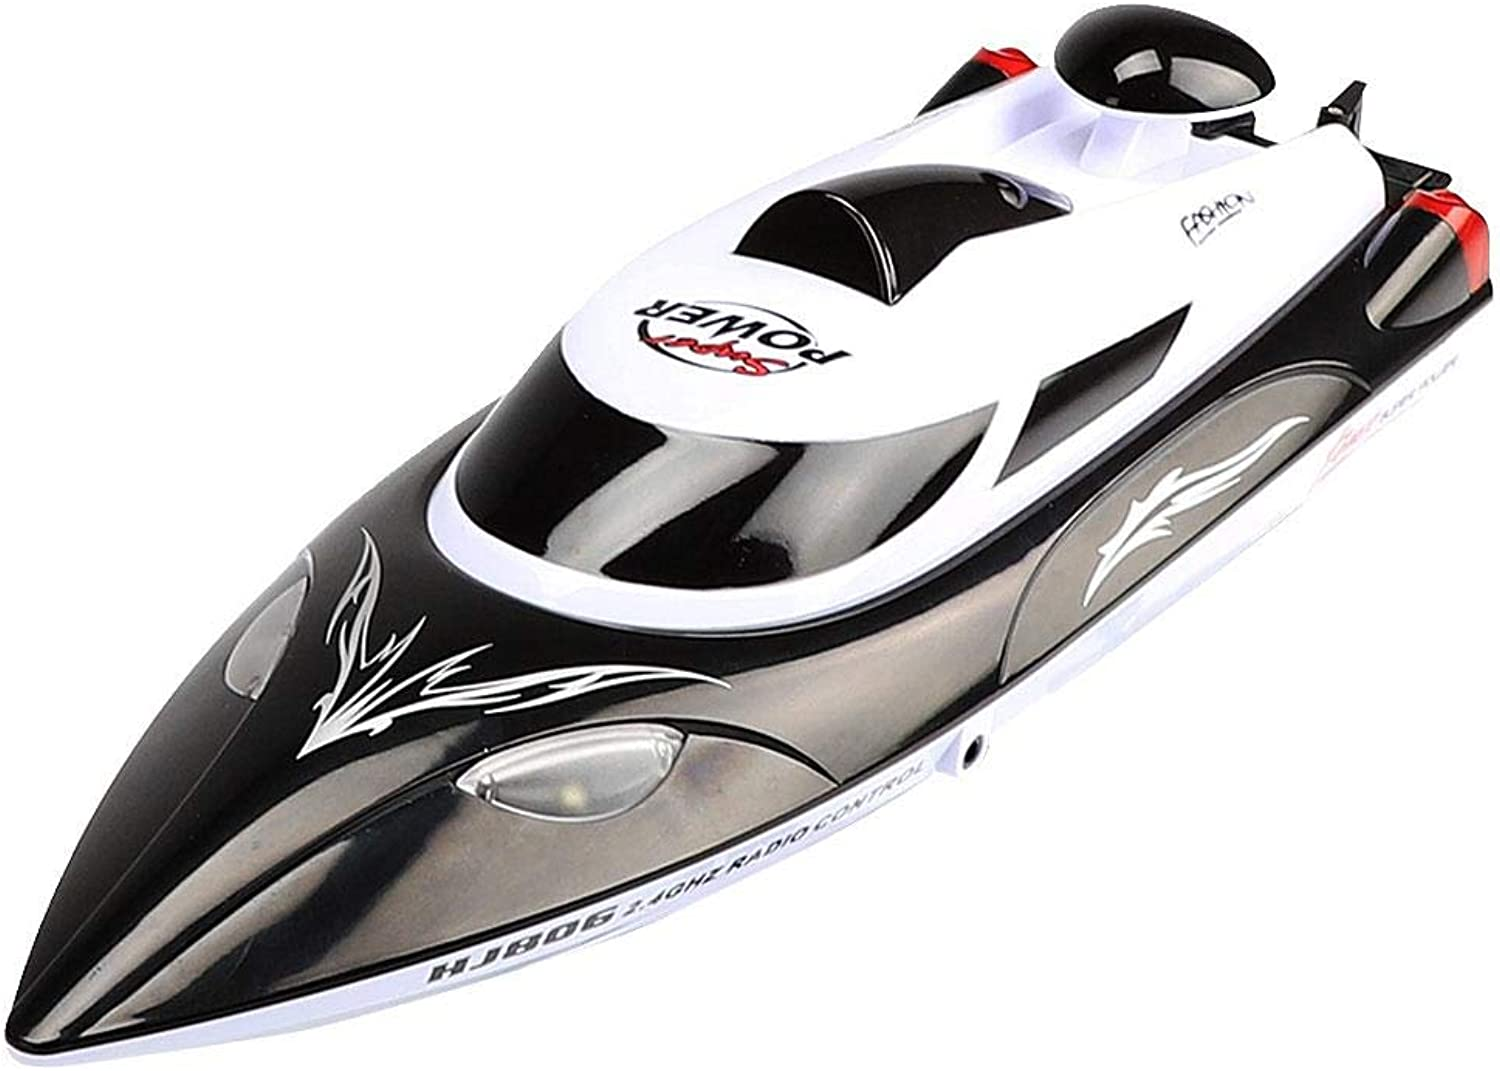 Generic Rc Remote Control Boat Speedboat Swimming Pool Outdoors Racing Boat Novelty Fashion Black